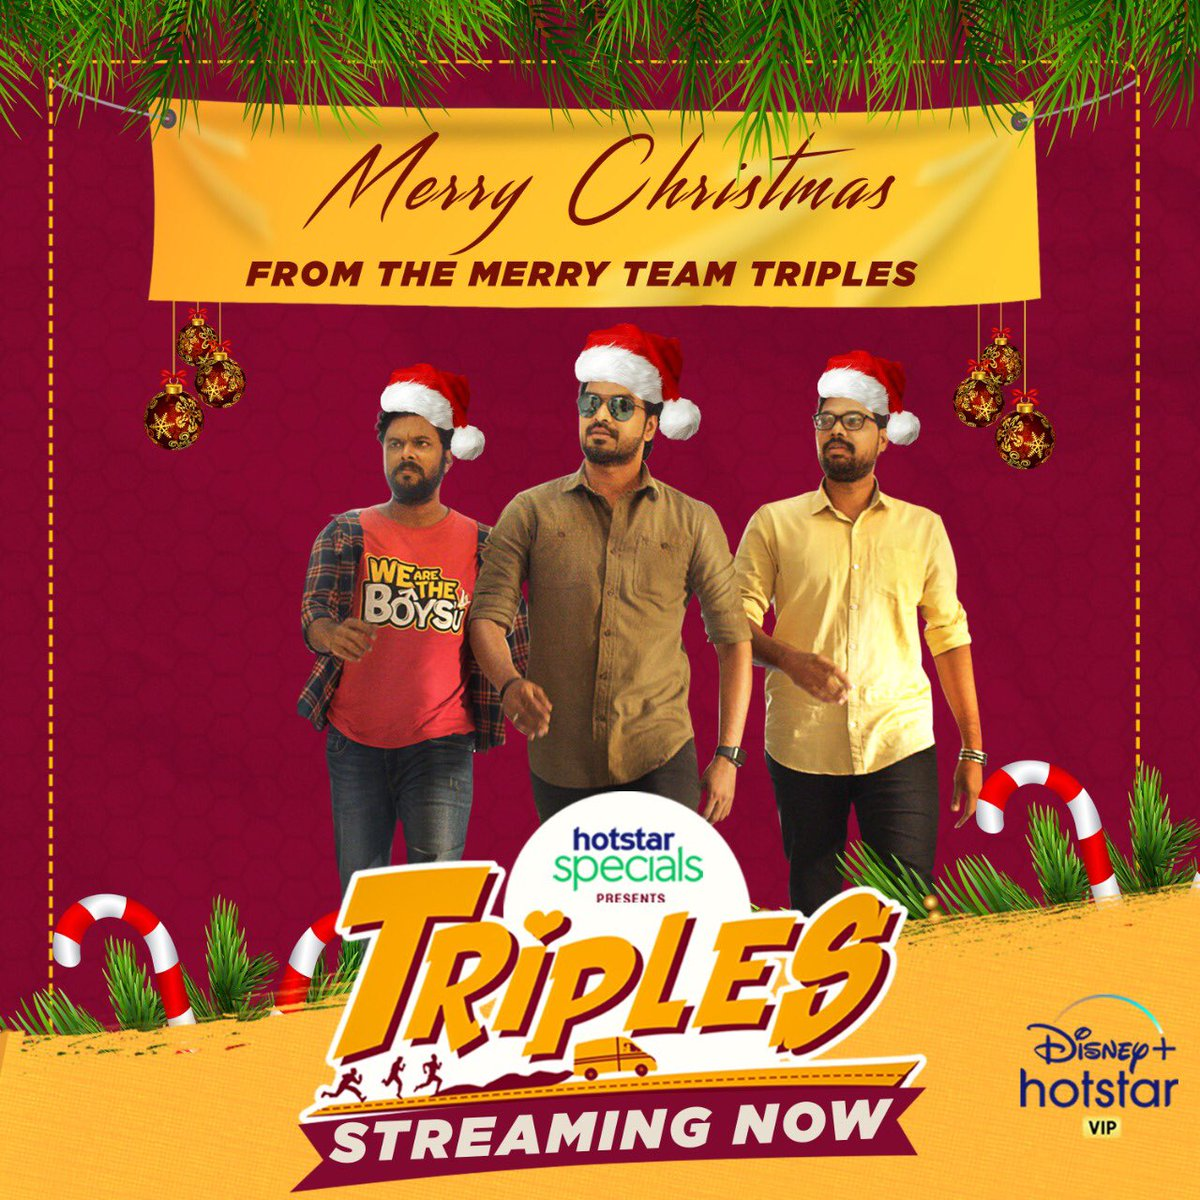 Jingle bells.. Jingle bells... Triples all the way! Celebrate this holiday season with the #Triples only on @DisneyplushsVIP  #triplesthefun